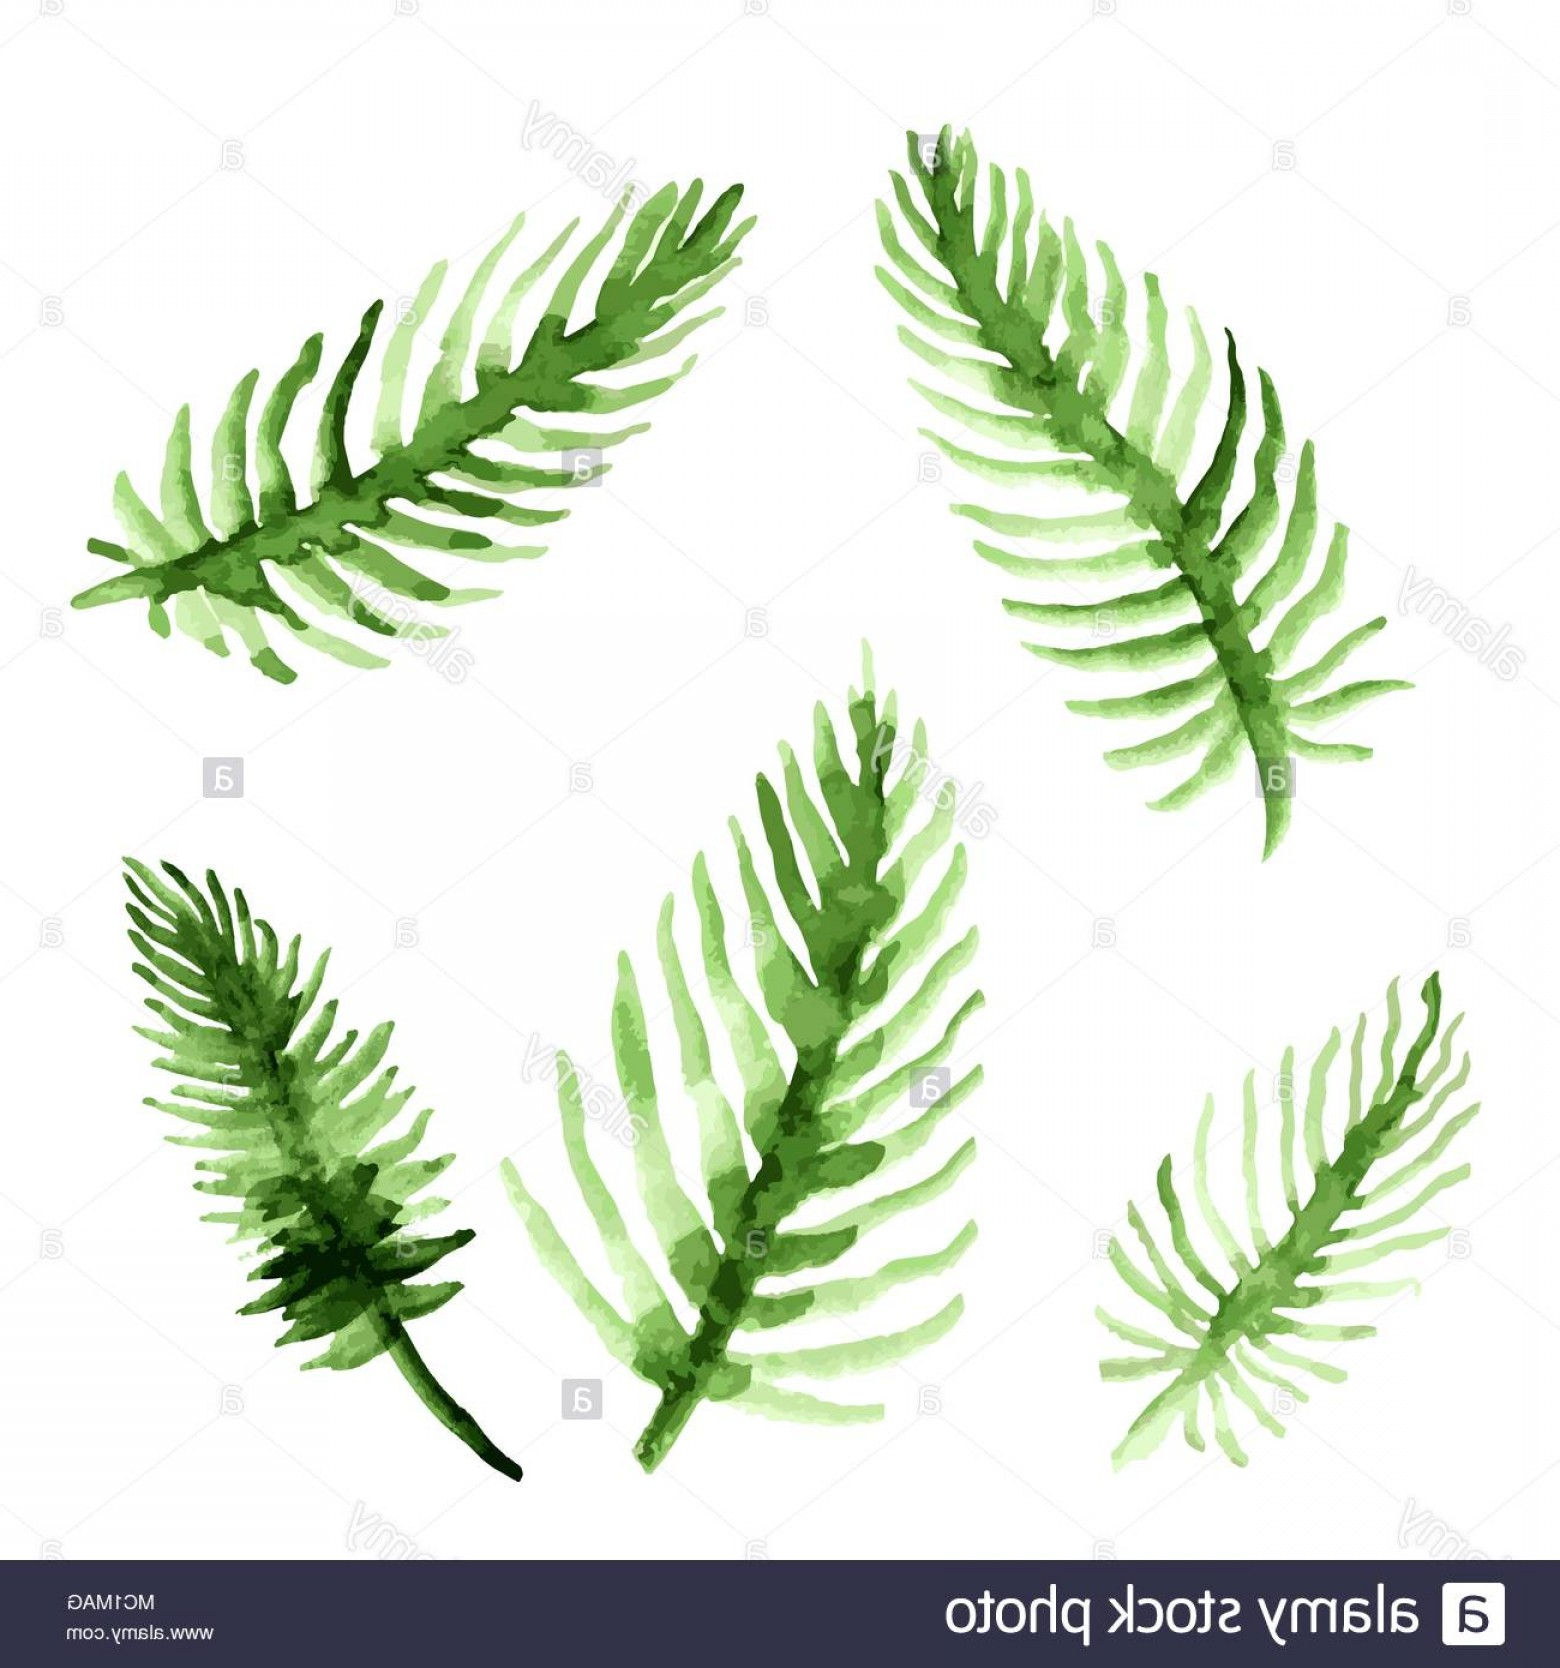 Watercolor Palm Tree Vector: Watercolor Palm Tree Leaves Set Green Fronds Collection Vector Illustration Isolated On White Background Image